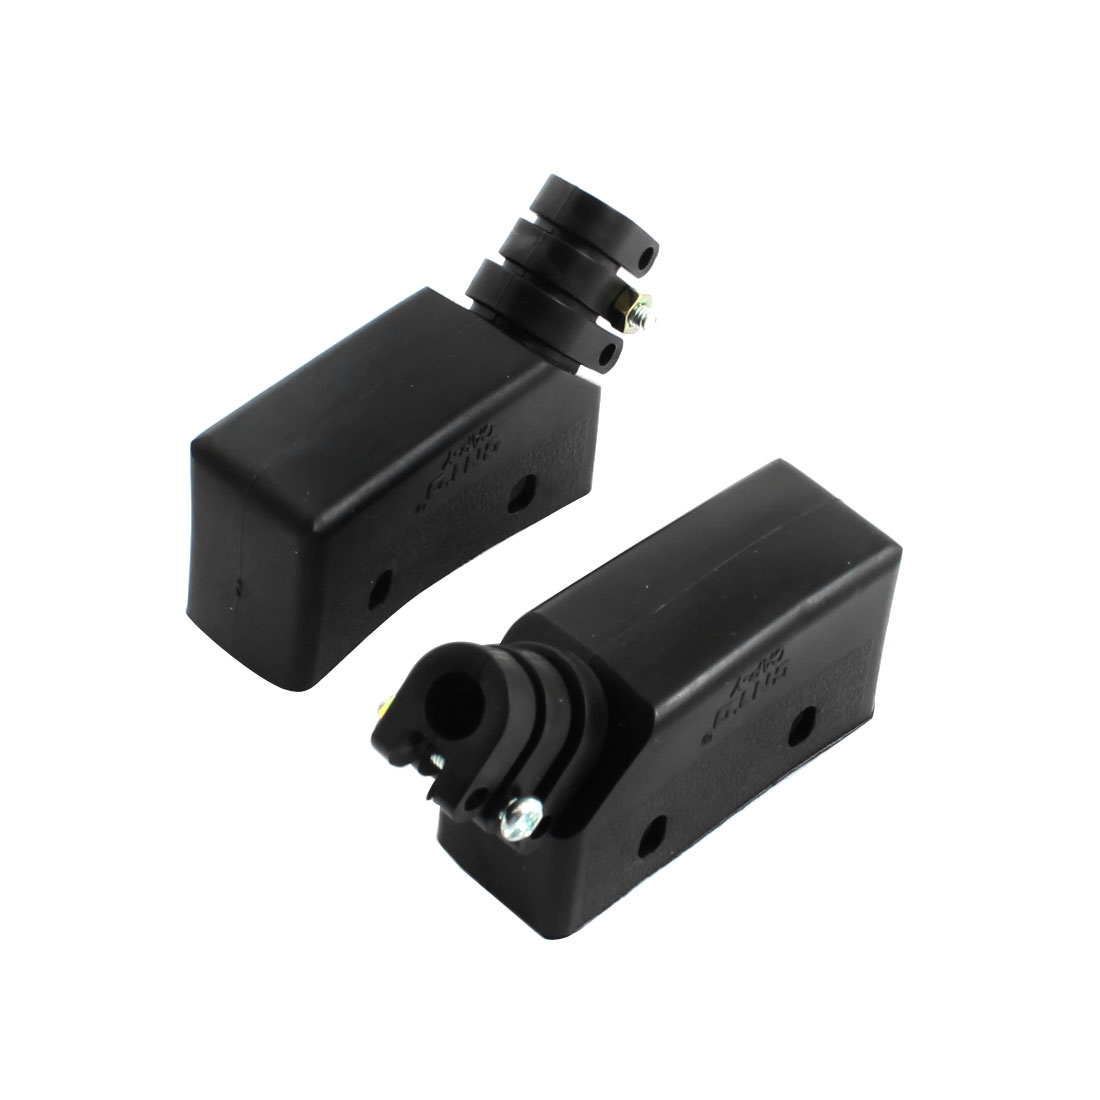 2Pcs Black Rubber Waterproof Limit Switch Protector Case Holder Cap